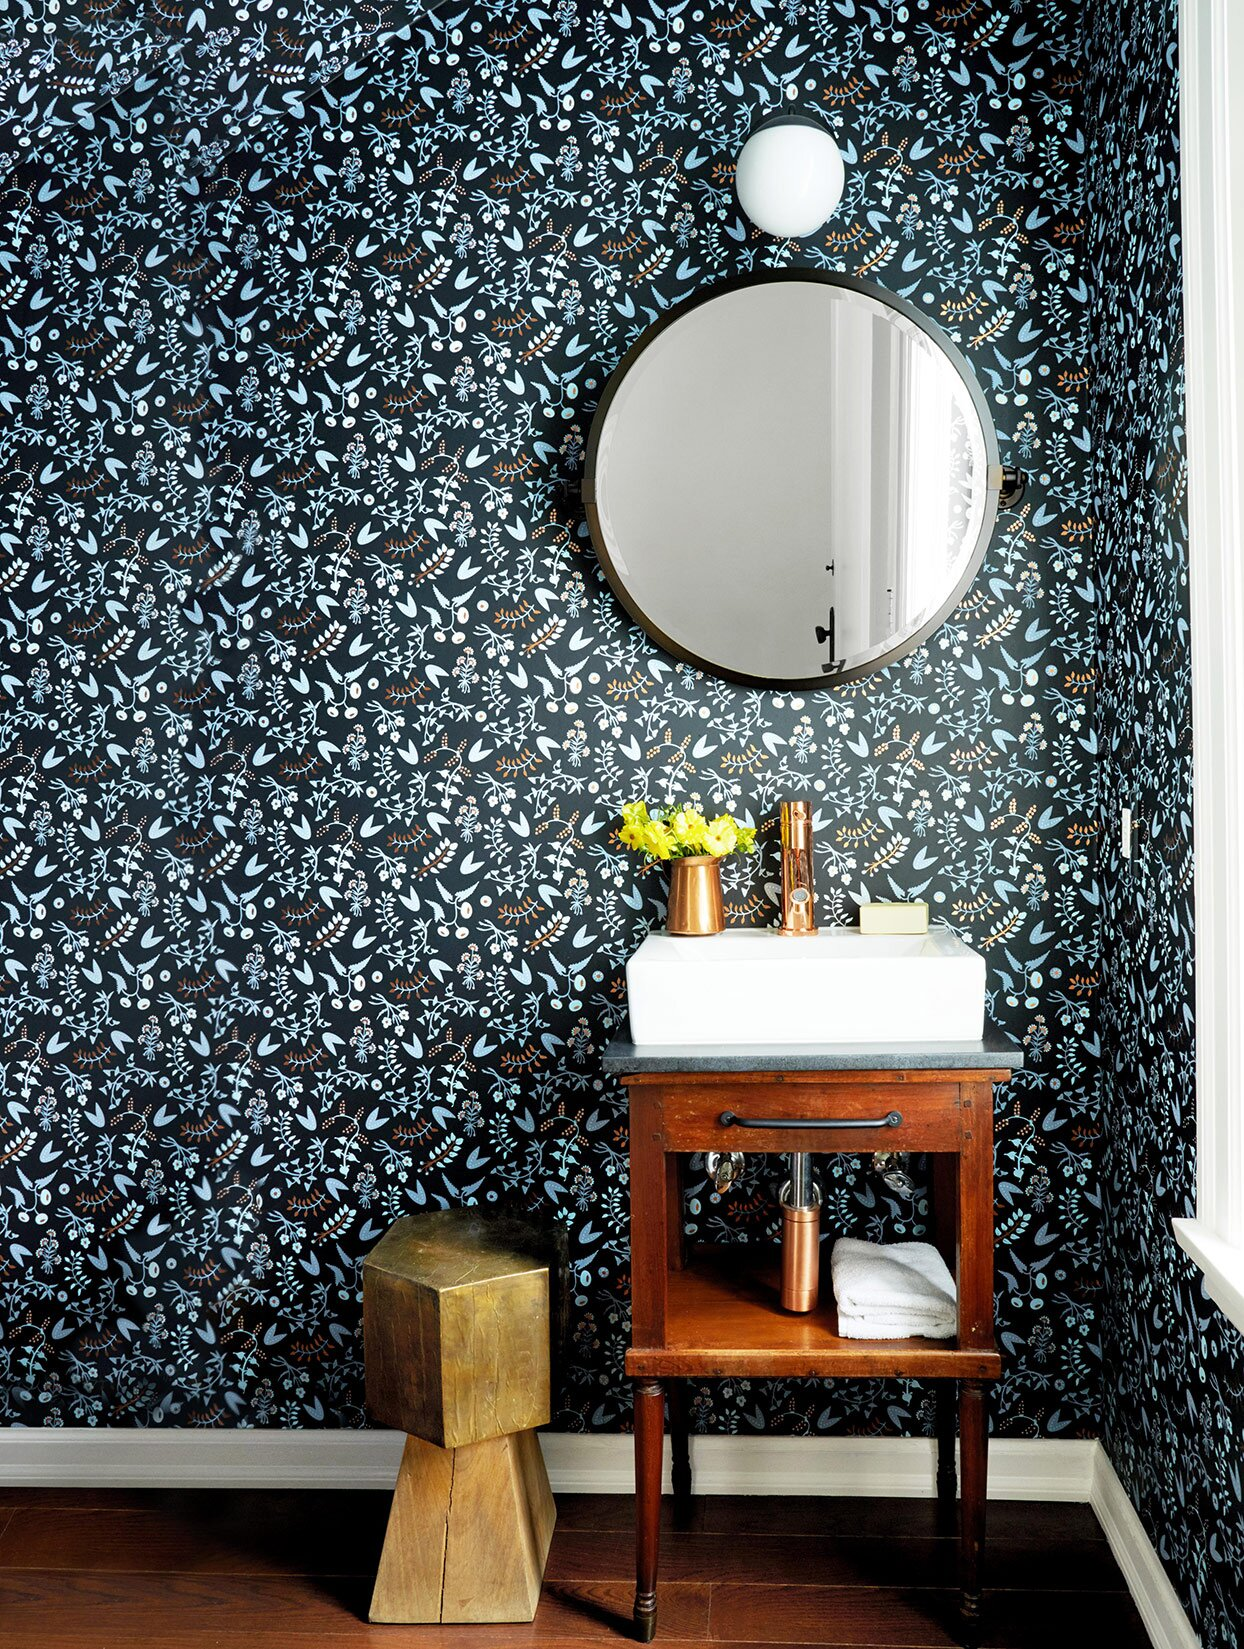 Corner of room with floral wallpaper